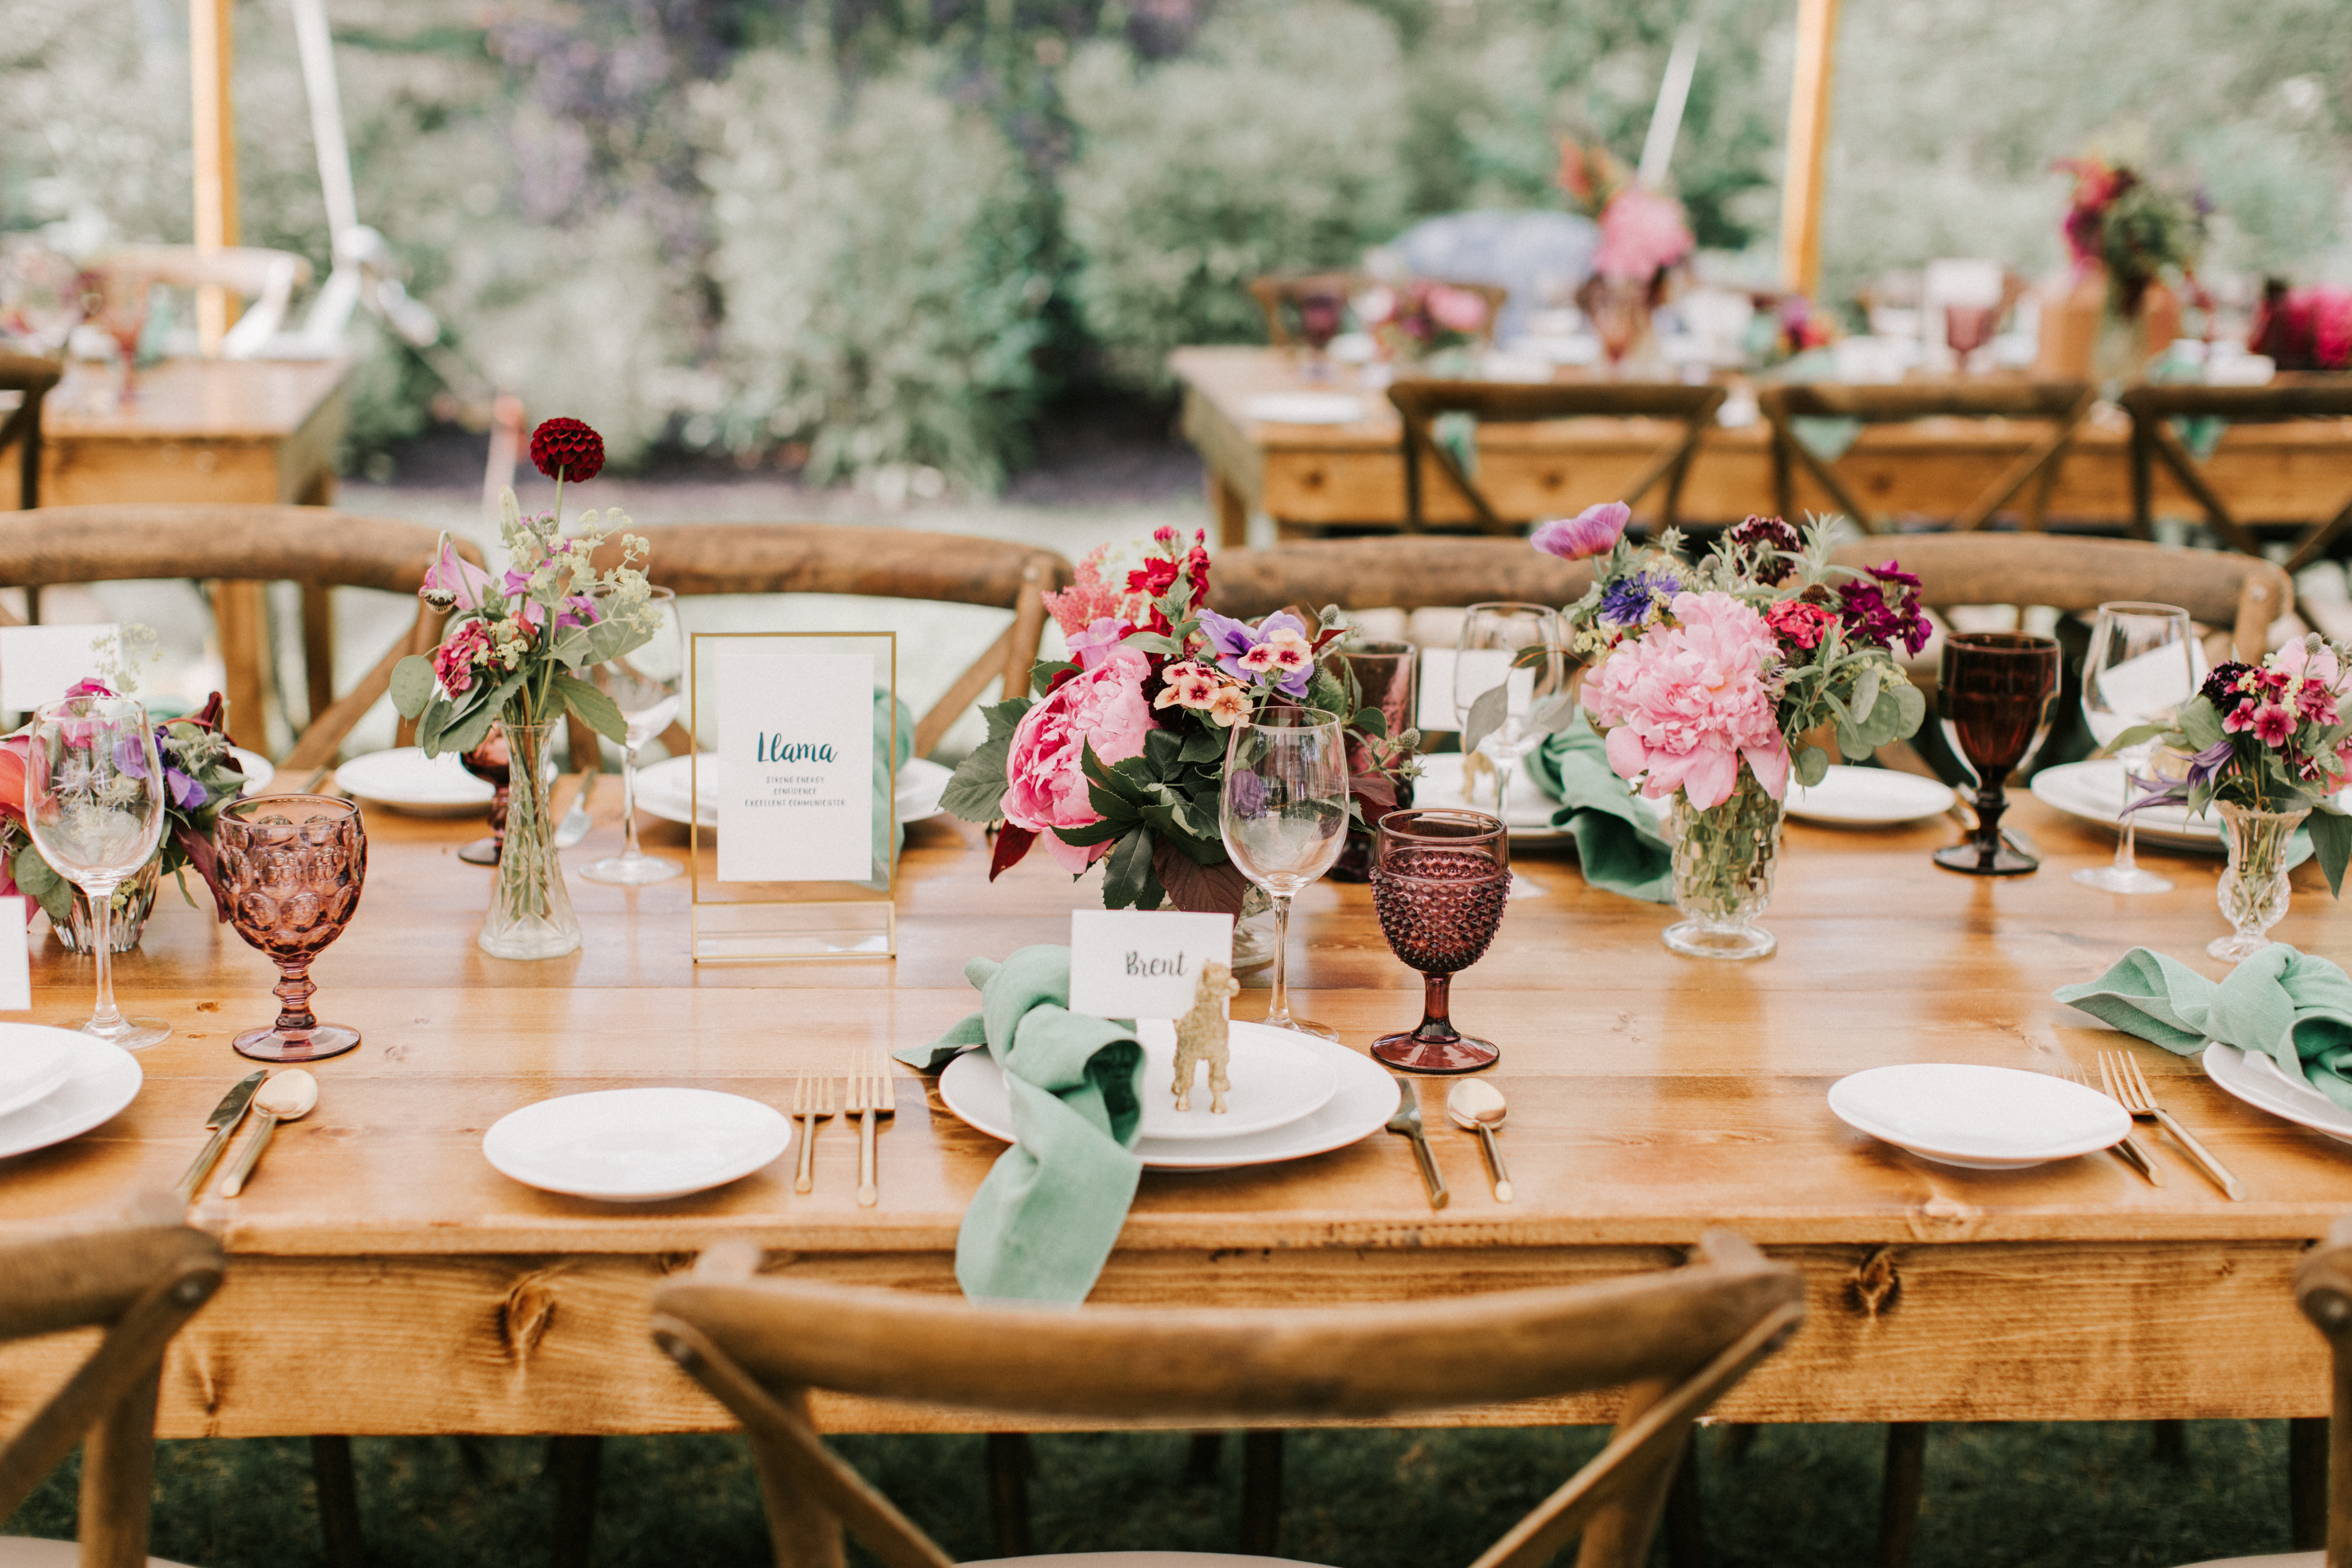 Table setting at Hidden Pond wedding in Kennebunkport, Maine